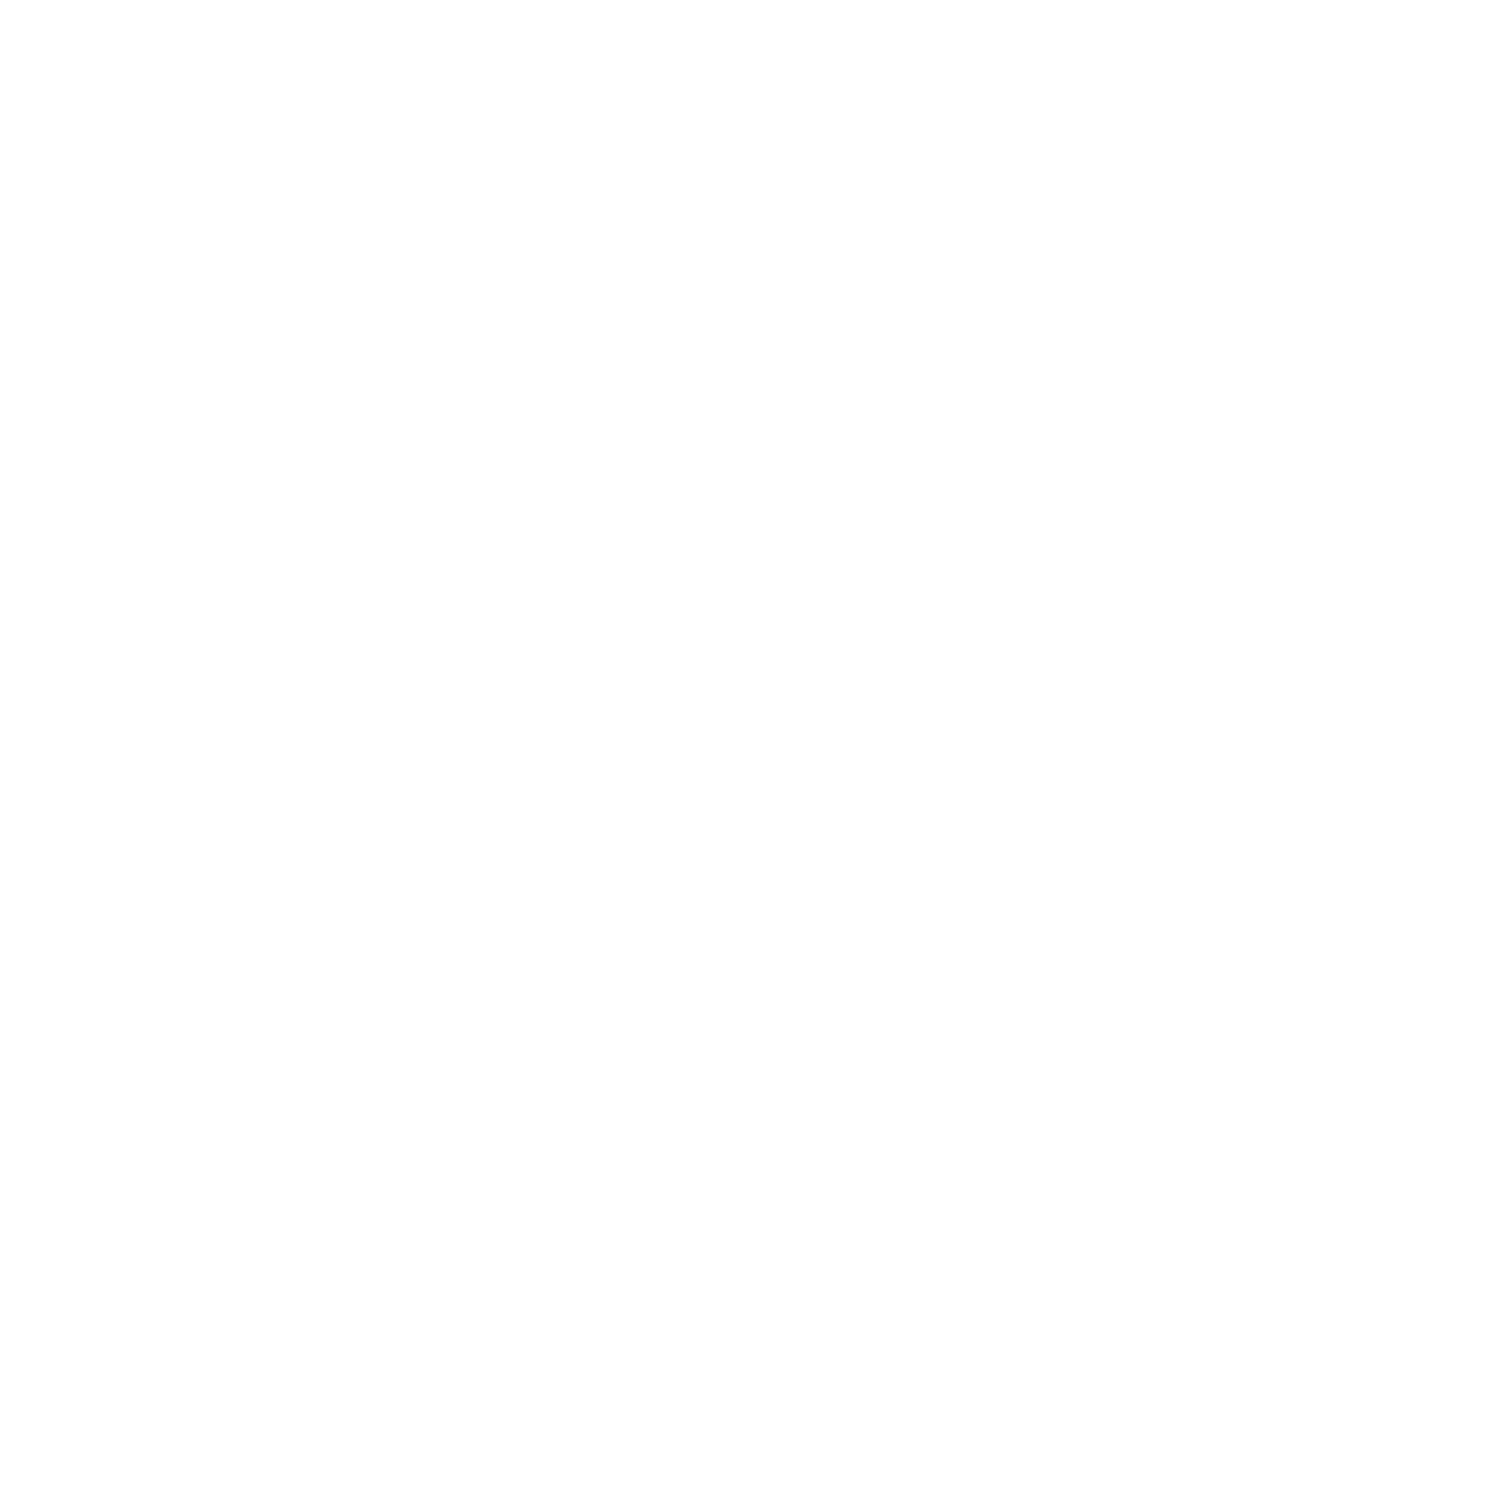 JAY PATTERN DESIGN